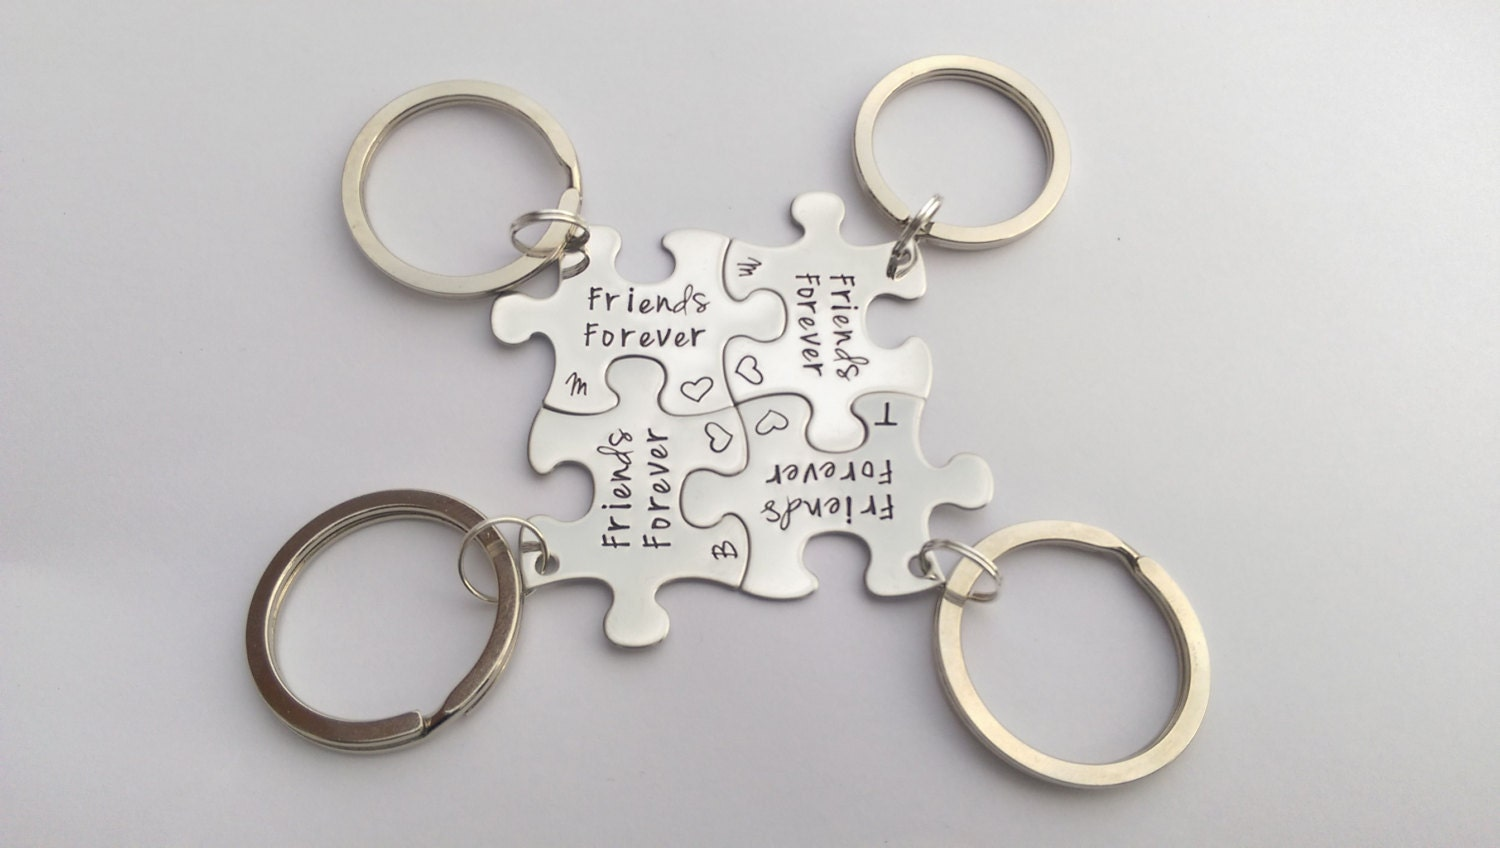 Personalised friends gift - friends keyrings - jigsaw puzzle piece keyrings -Friends matching gifts - long distance friendship - best friend